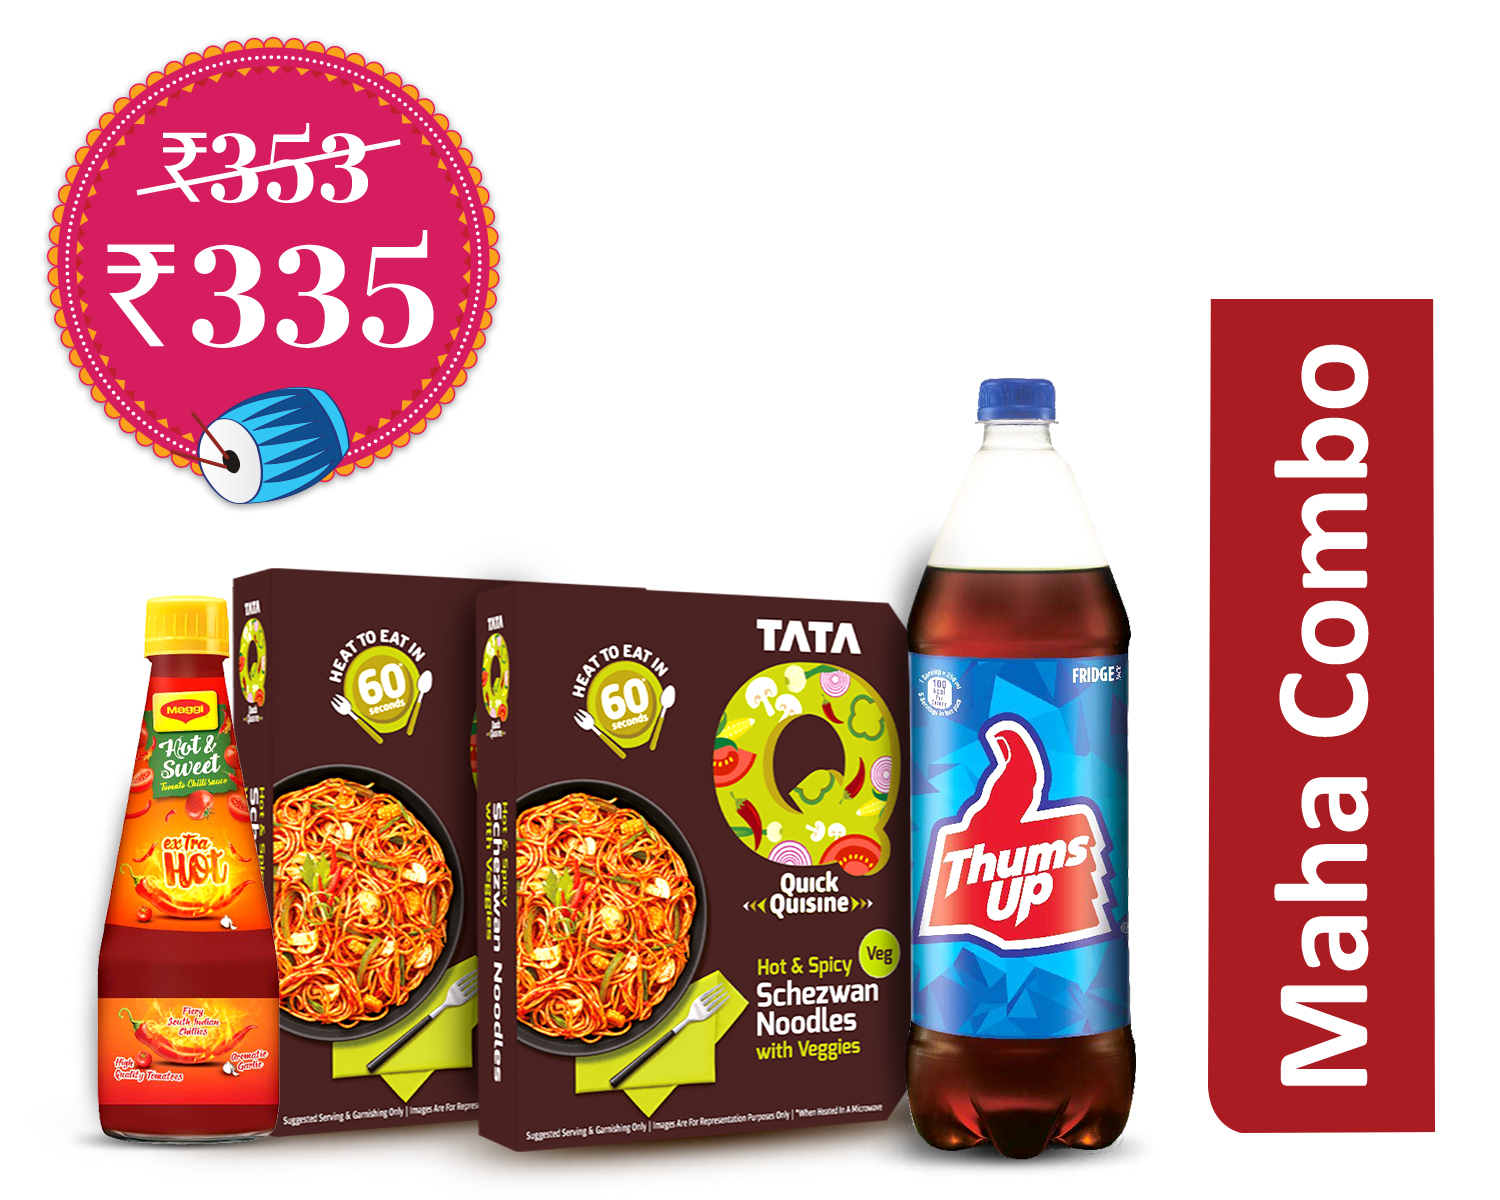 Snack-a-thon Packs Veg (1Unit) : Tata Q Hot & Spicy Schezwan Noodles With Veggies * 2 + Maggi Extra Hot H&S + Thums Up 1.25Ltr